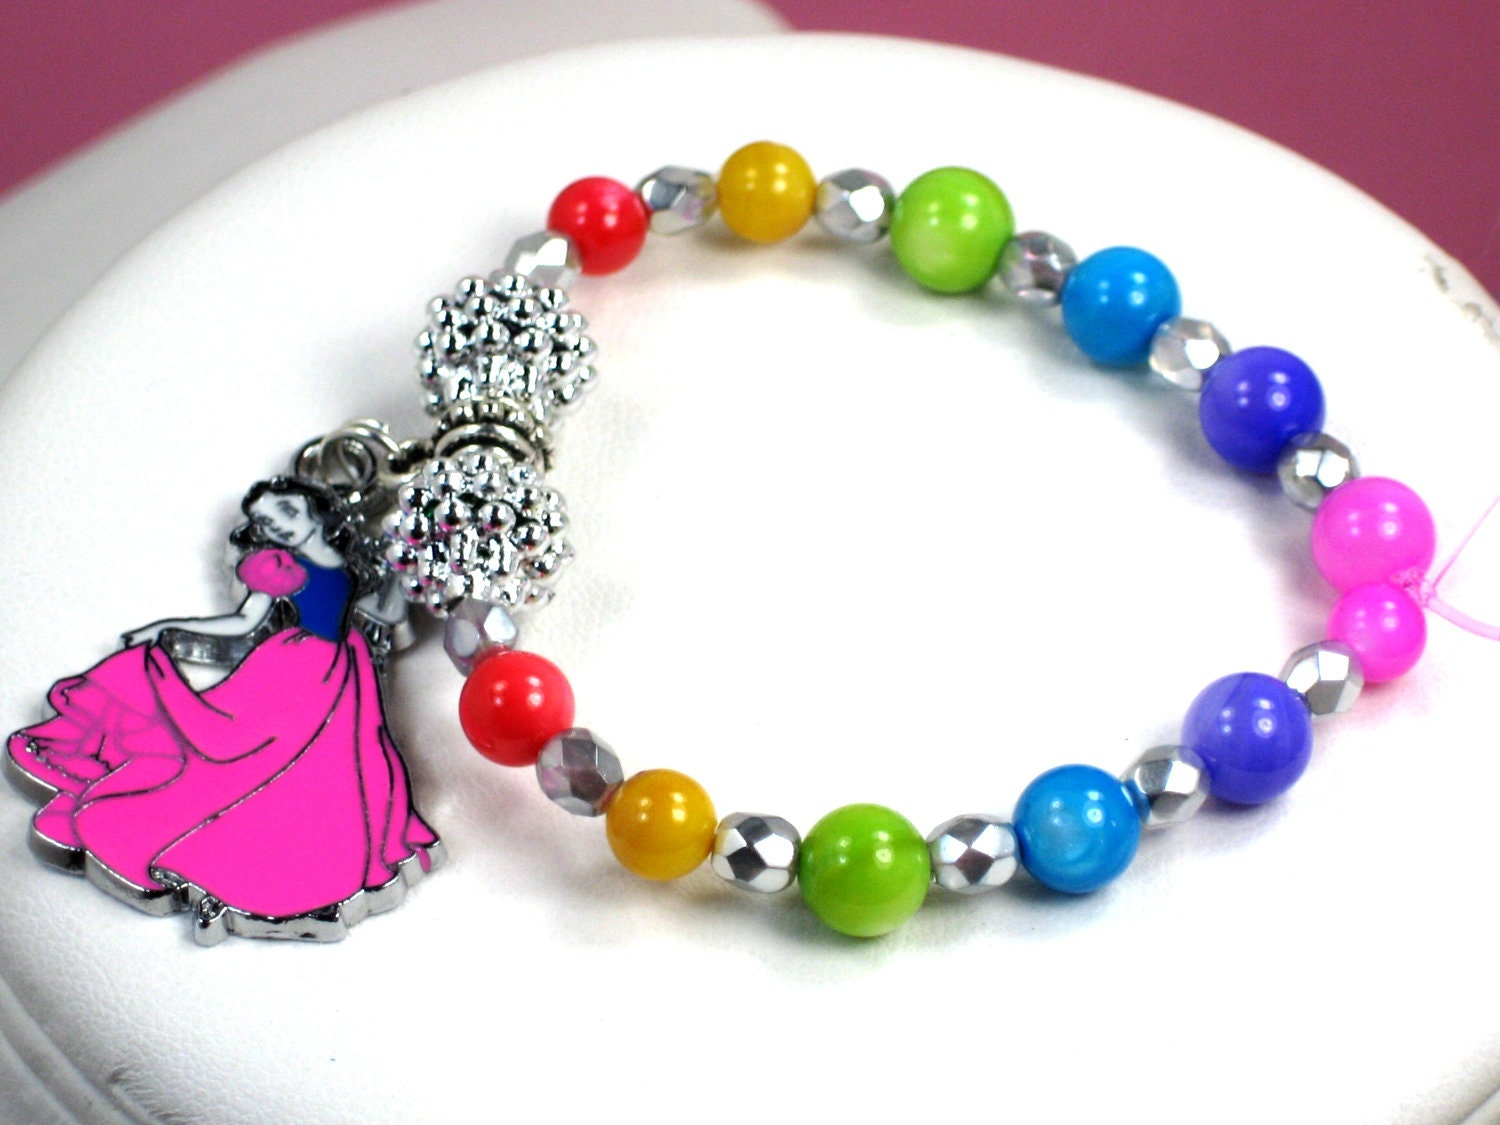 Girls Charm Bracelets on Young Girls Snow White Charm Bracelet Rainbow Colored Bright Shining